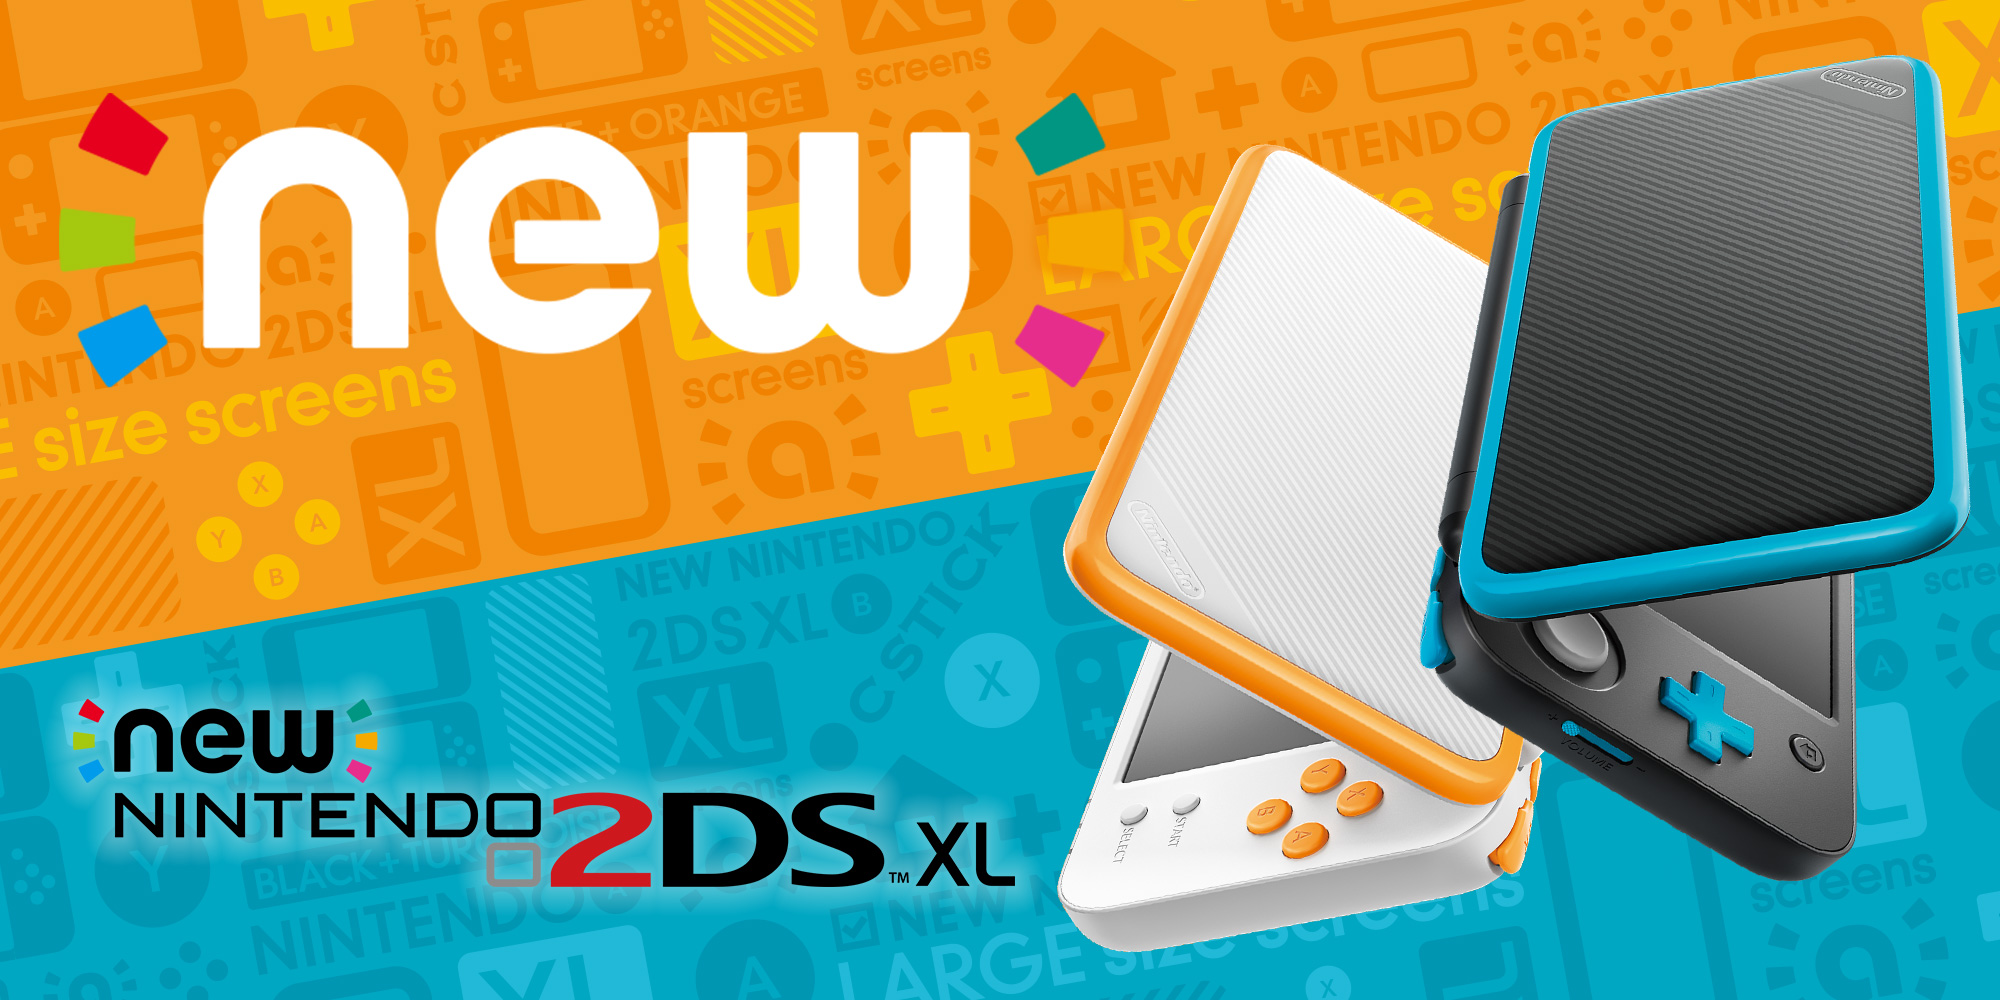 Nintendo to launch New Nintendo 2DS XL portable system on July 28th